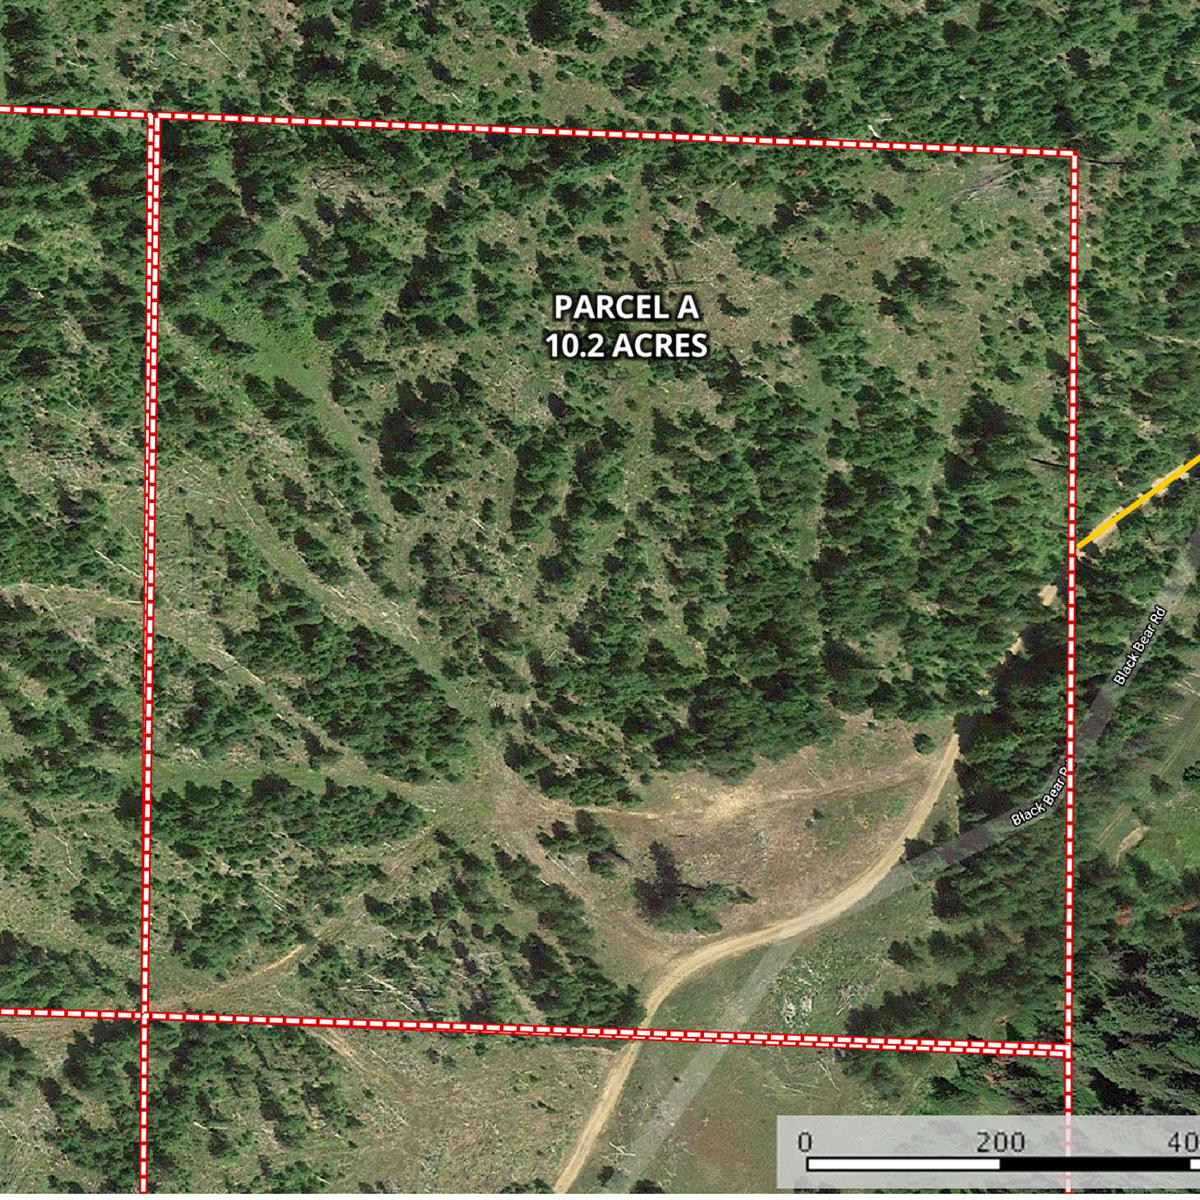 Land for Sale in Orofino, ID, building lots, timbered acres